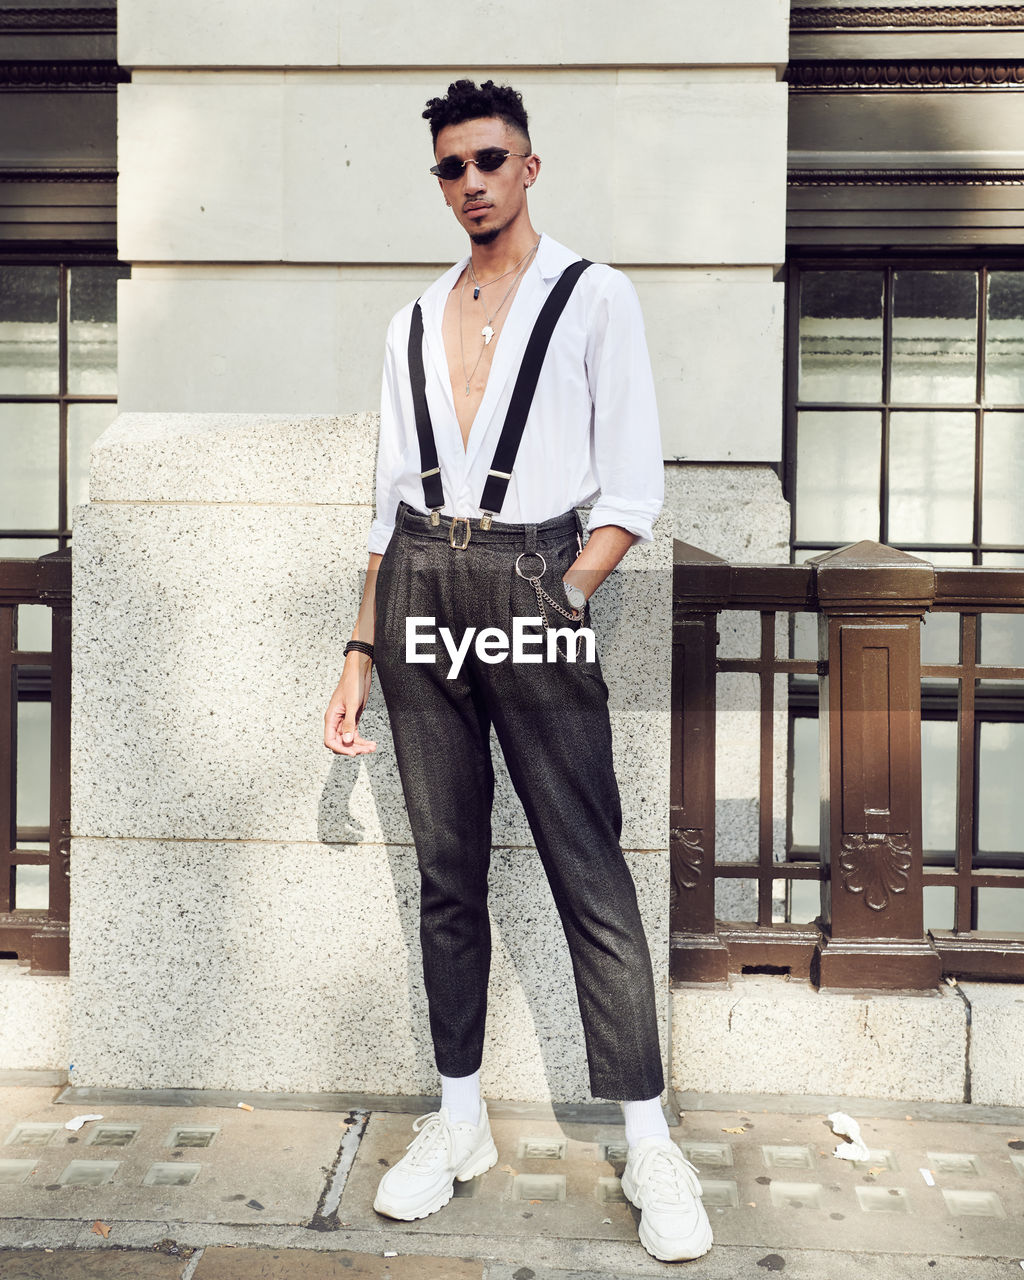 young men, young adult, one person, full length, standing, portrait, looking at camera, architecture, real people, beautiful people, front view, fashion, casual clothing, building exterior, built structure, handsome, glasses, confidence, outdoors, jeans